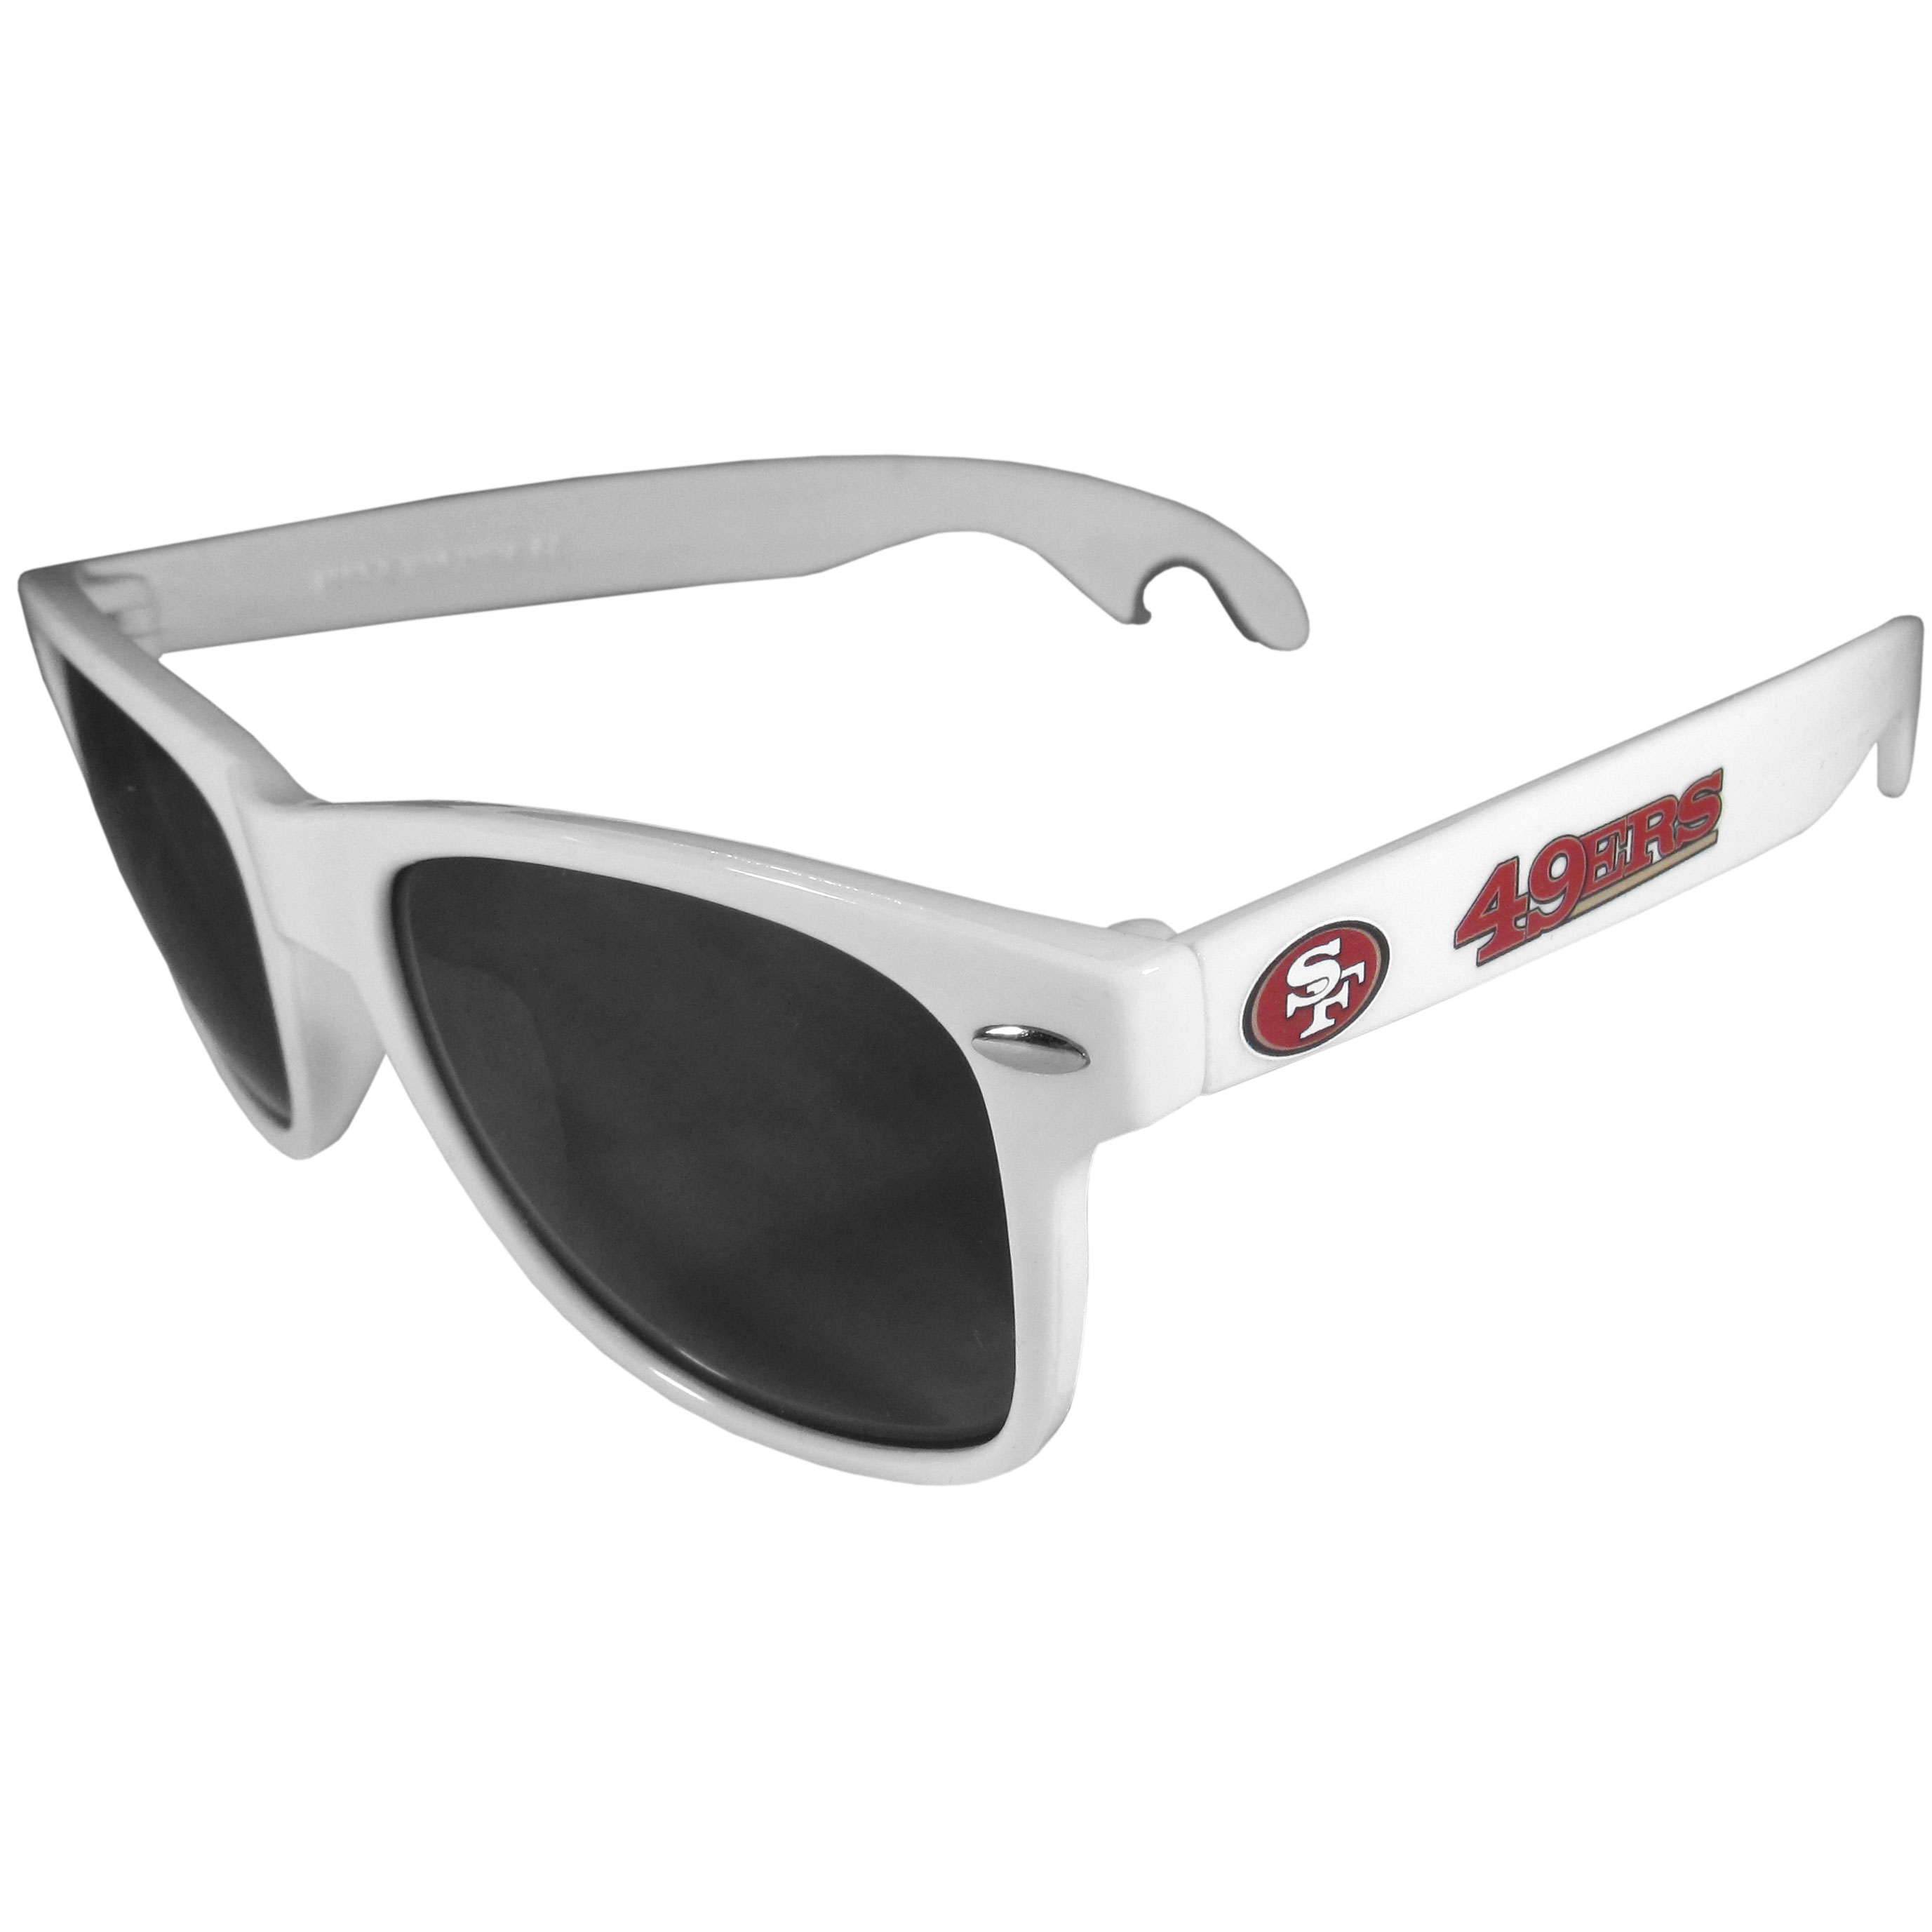 San Francisco 49ers Beachfarer Bottle Opener Sunglasses, White - Seriously, these sunglasses open bottles! Keep the party going with these amazing San Francisco 49ers bottle opener sunglasses. The stylish retro frames feature team designs on the arms and functional bottle openers on the end of the arms. Whether you are at the beach or having a backyard BBQ on game day, these shades will keep your eyes protected with 100% UVA/UVB protection and keep you hydrated with the handy bottle opener arms.